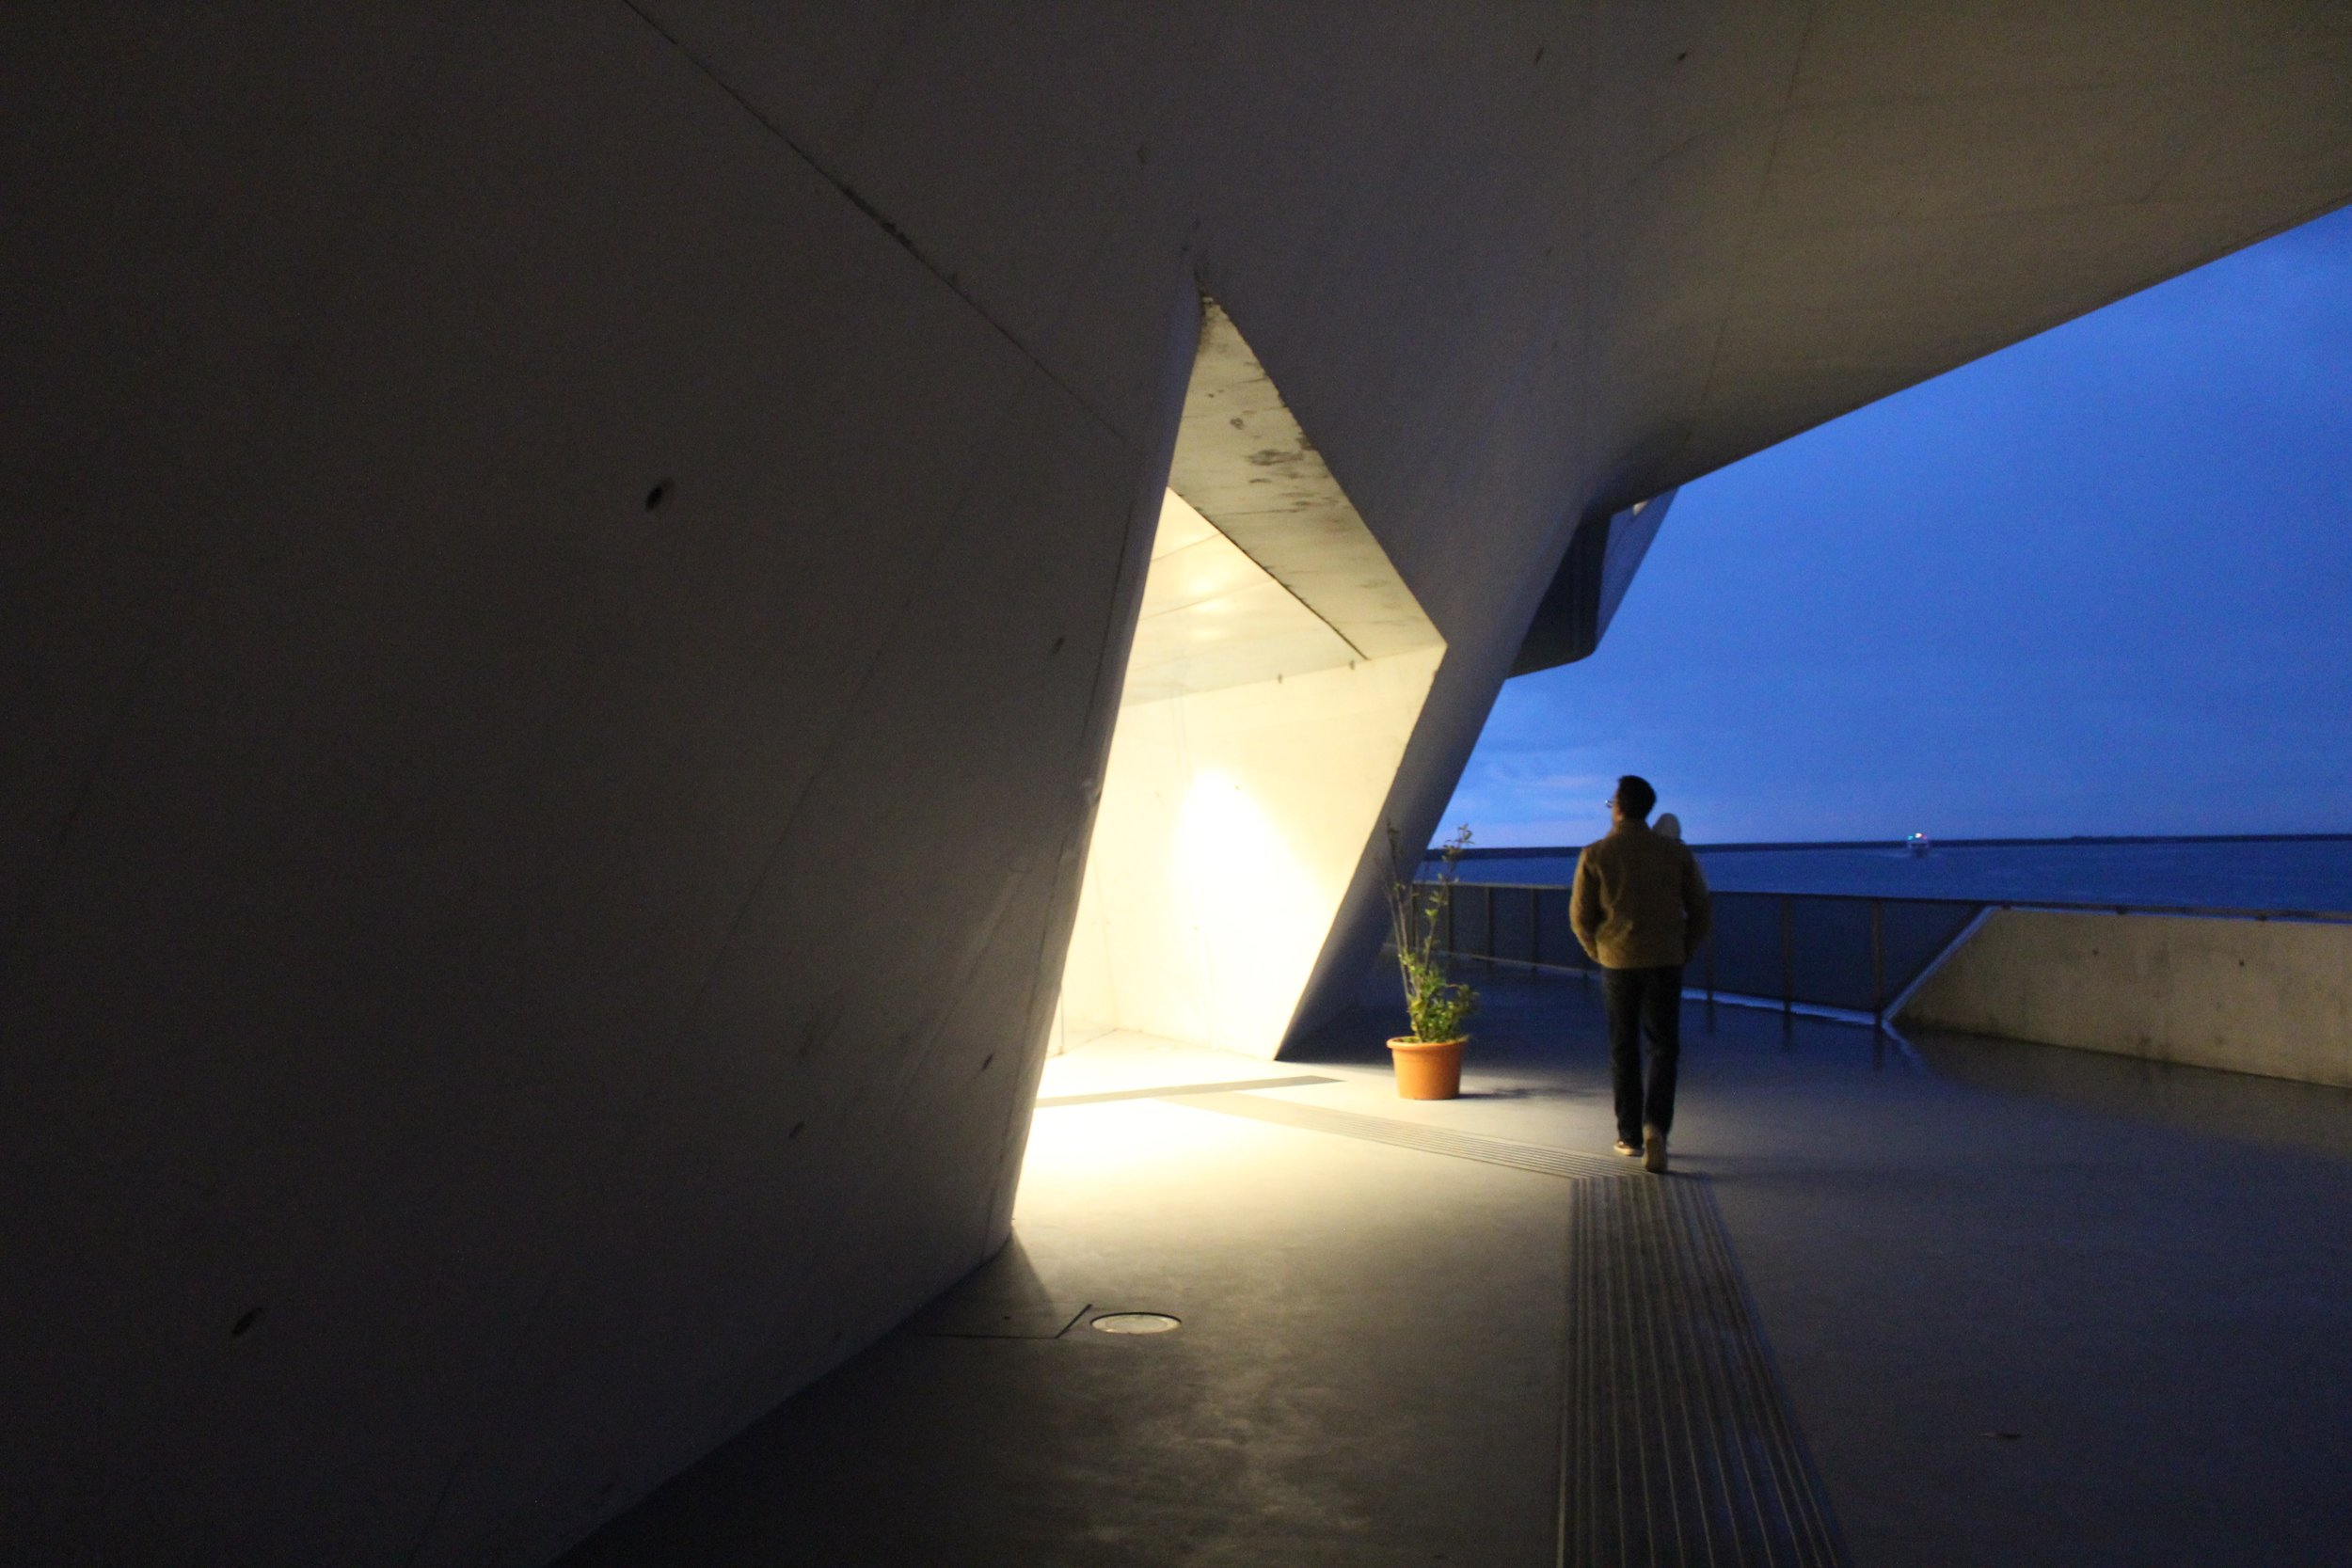 Exploring Hadid's Salerno ferry terminal in the evening